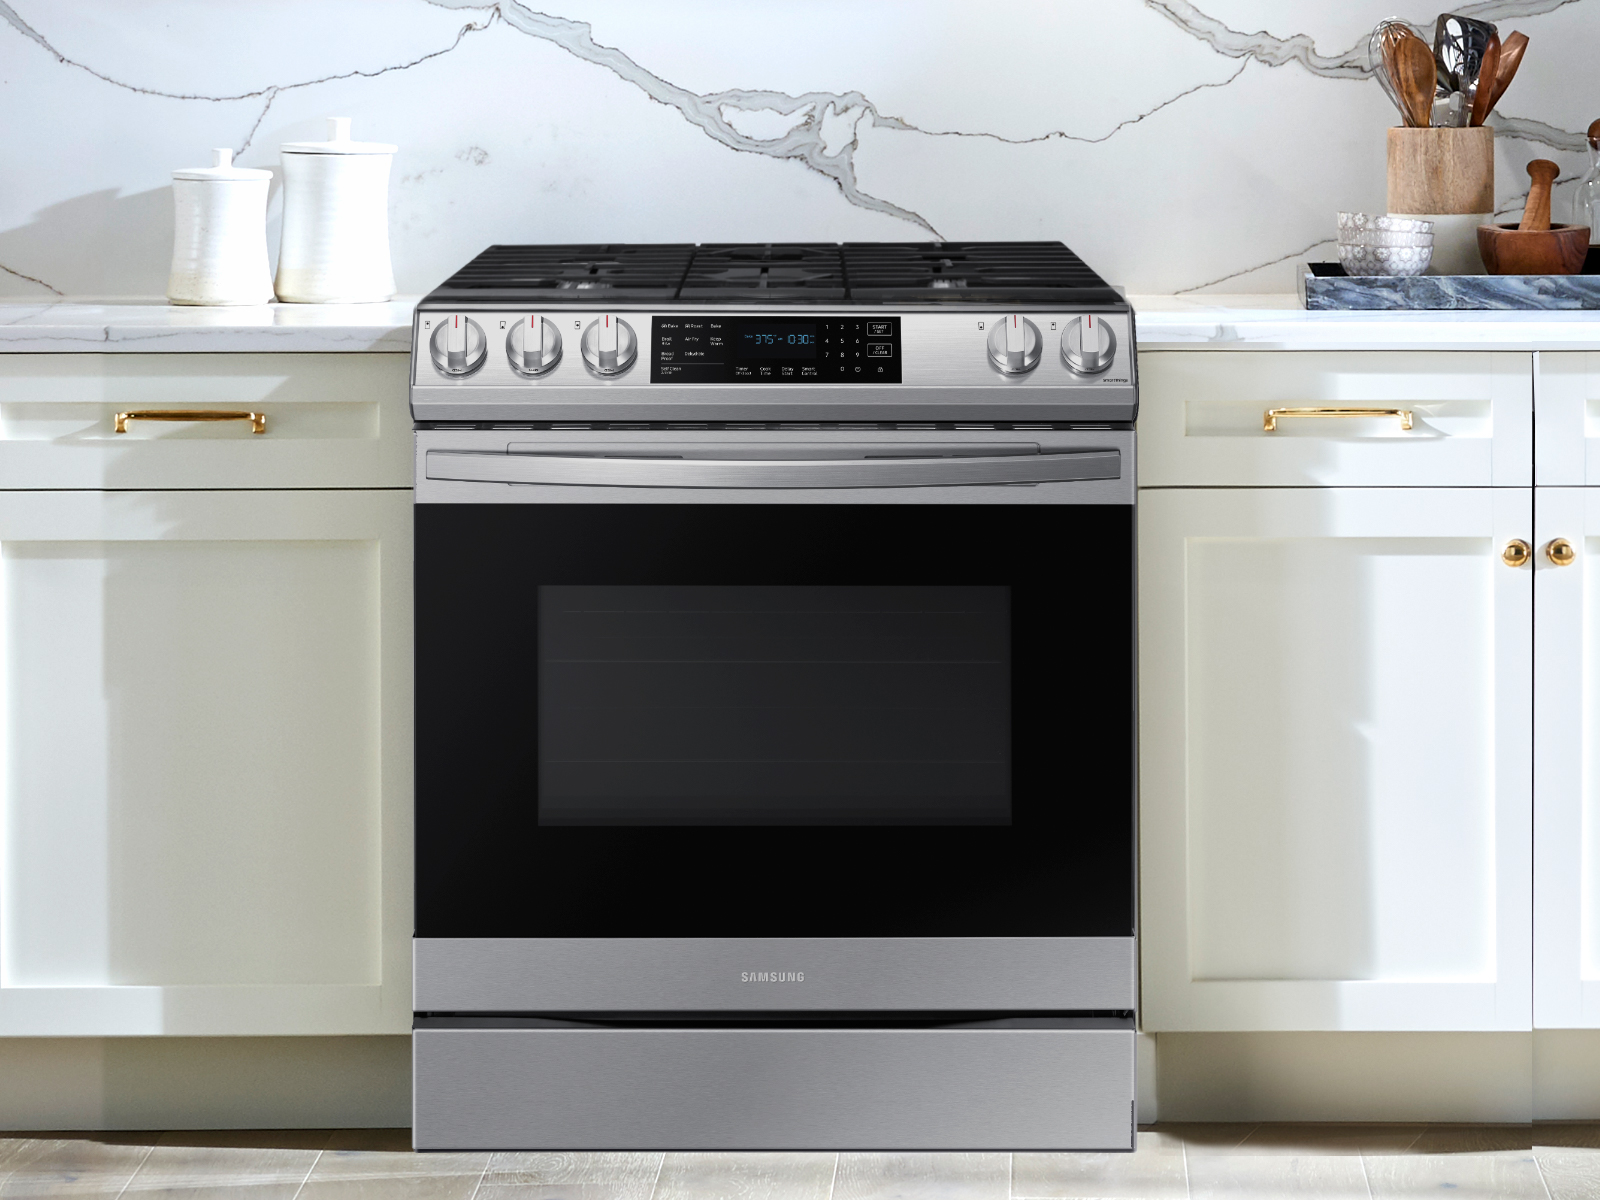 A Buying Guide For The Best Kitchen Ranges Bonus Gas Vs Electric Ranges Big Sandy Superstore Oh Ky Wv